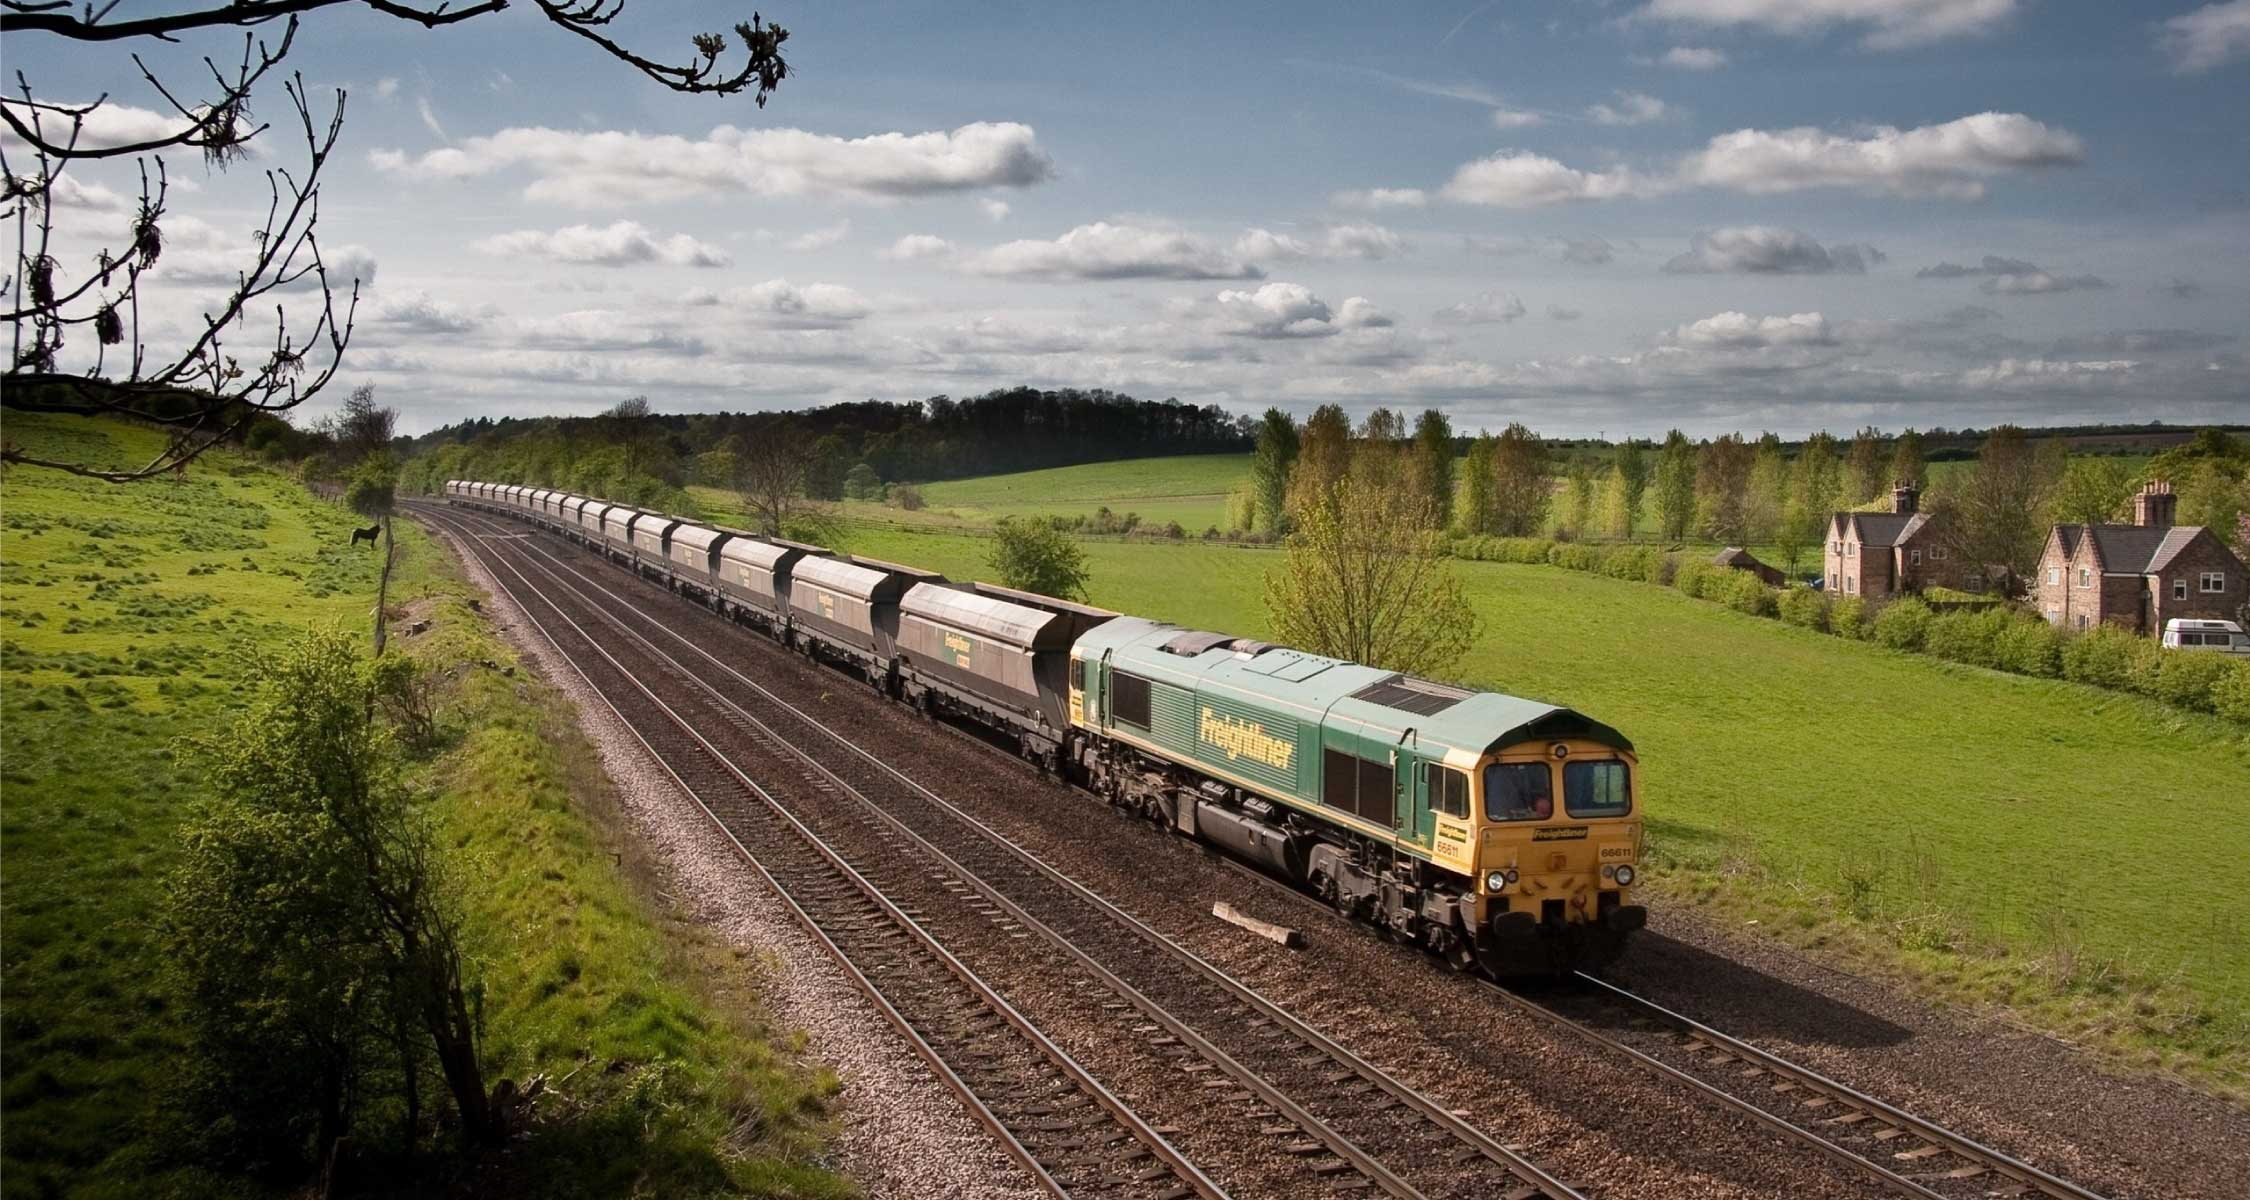 Network rail Specify Postsaver For All Trackside Fencing